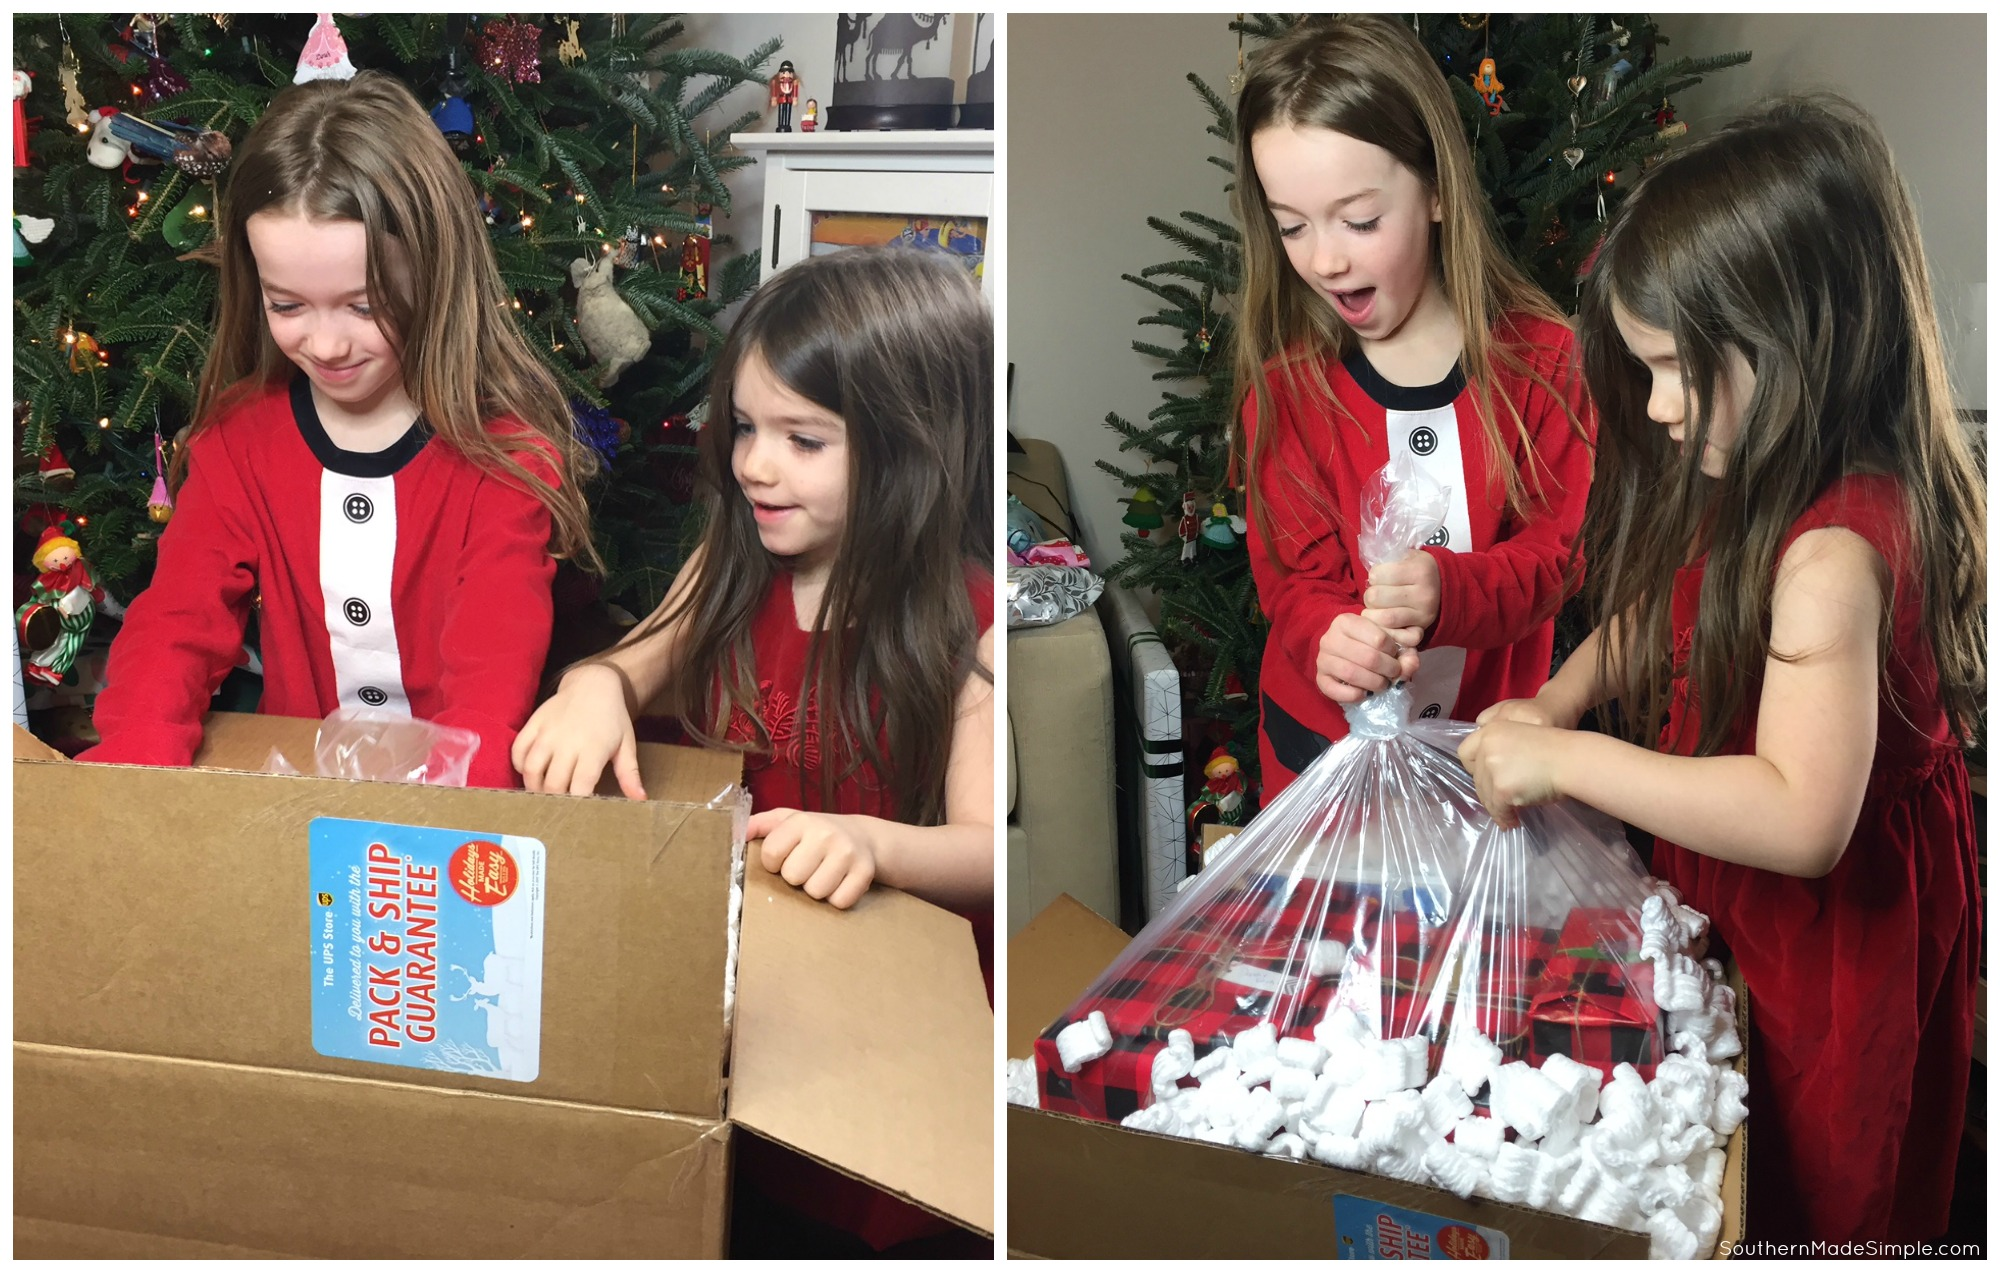 Continuing Holiday Traditions When Family is Far Away #HolidaysMadeEasy #TheUPSStore #ad